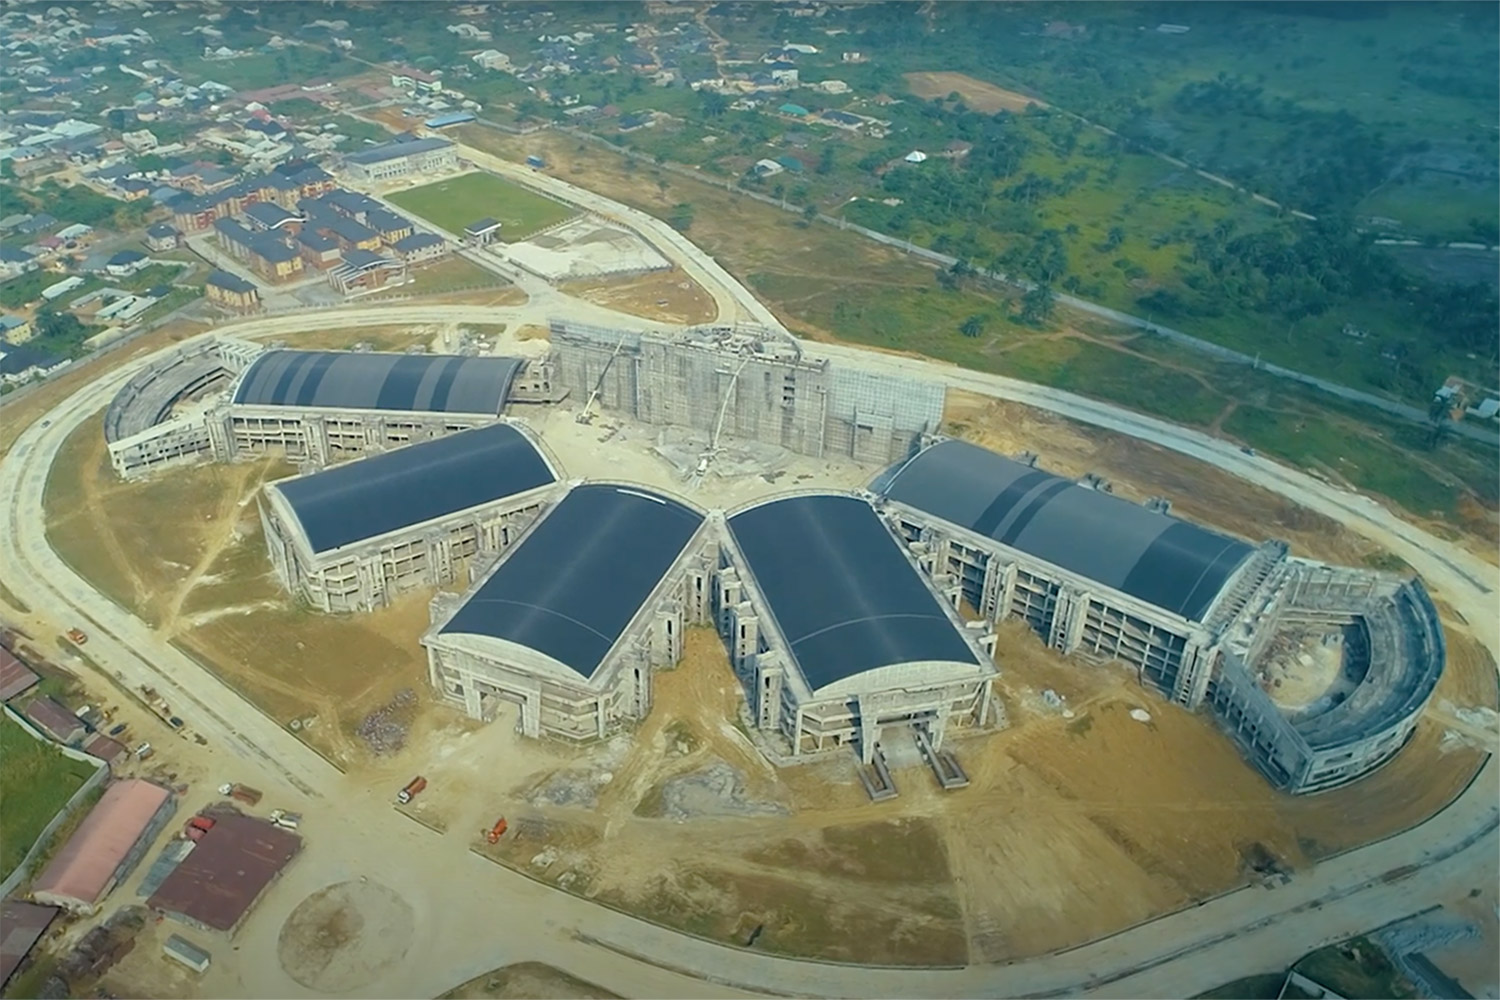 "Bishop David Oyedepo Salvation Ministries ""Hand of God"". WSDG brought to supervise the acoustic design and design professional audio and video production facilities for the worship center. Aerial view in construction."